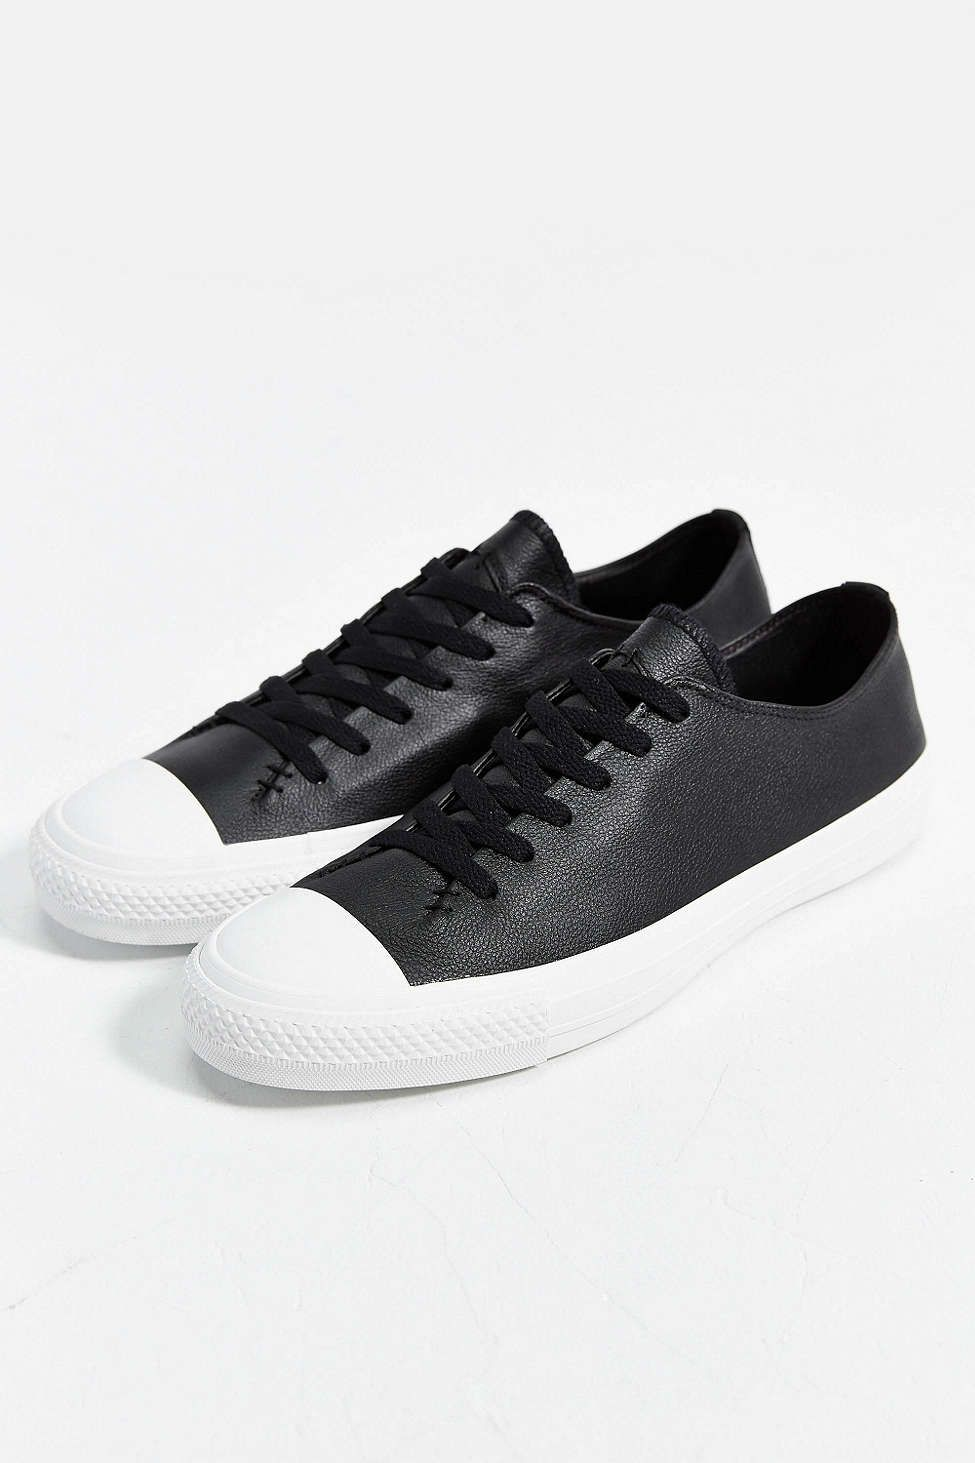 cd774aba44b9 Converse Chuck Taylor All Star Sawyer Leather Low-Top Sneaker ...